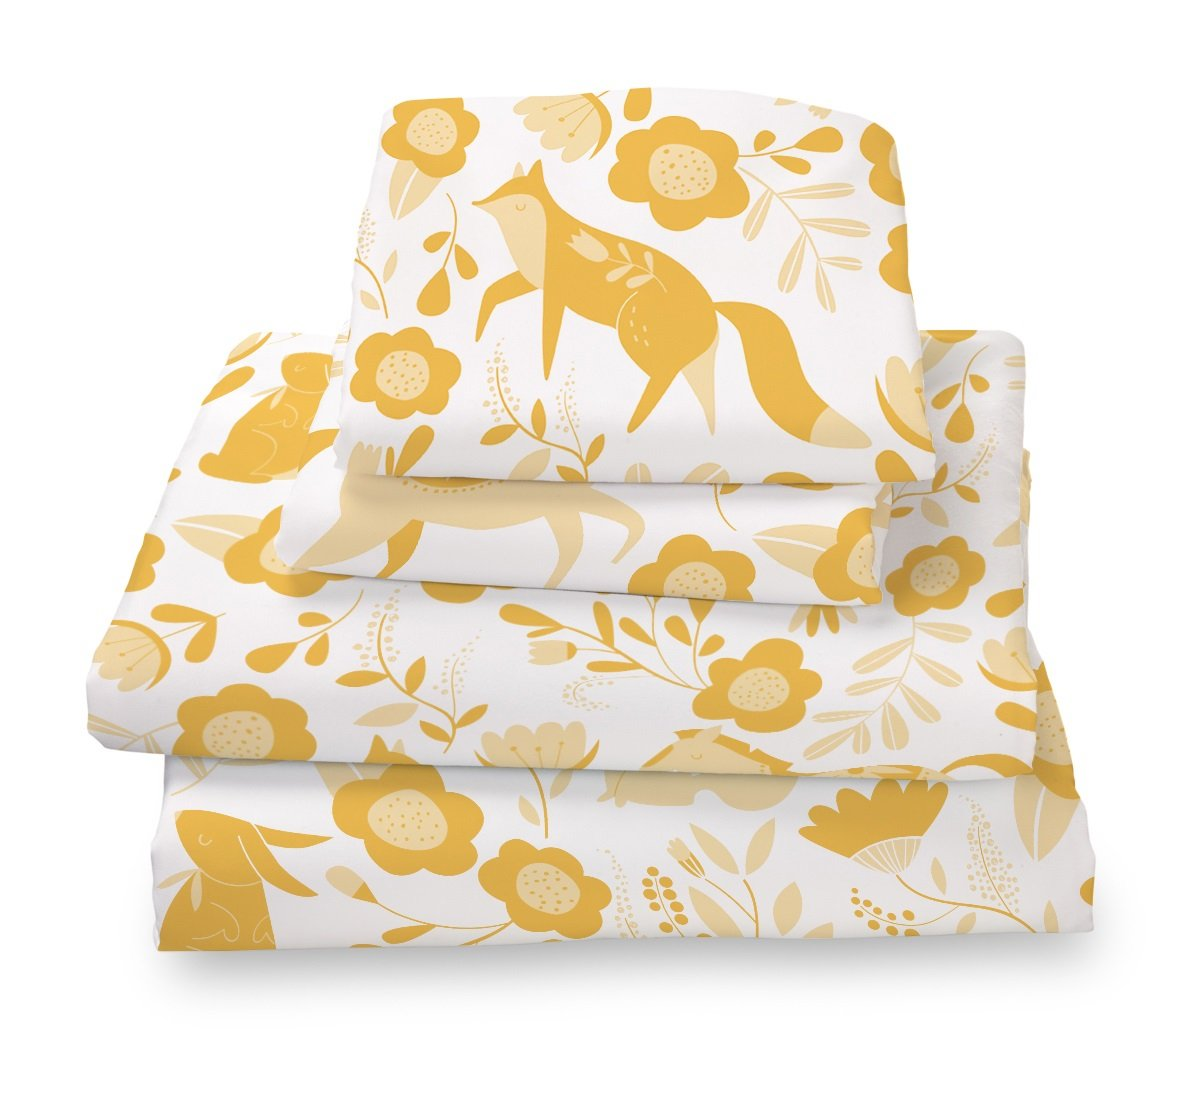 Where the Polka Dots Roam Marigold Yellow Folktale Forest Animals Full Size Sheet Set, Soft Sheets for Deep Mattresses, 4 Pieces Full Size Set in White and Gold